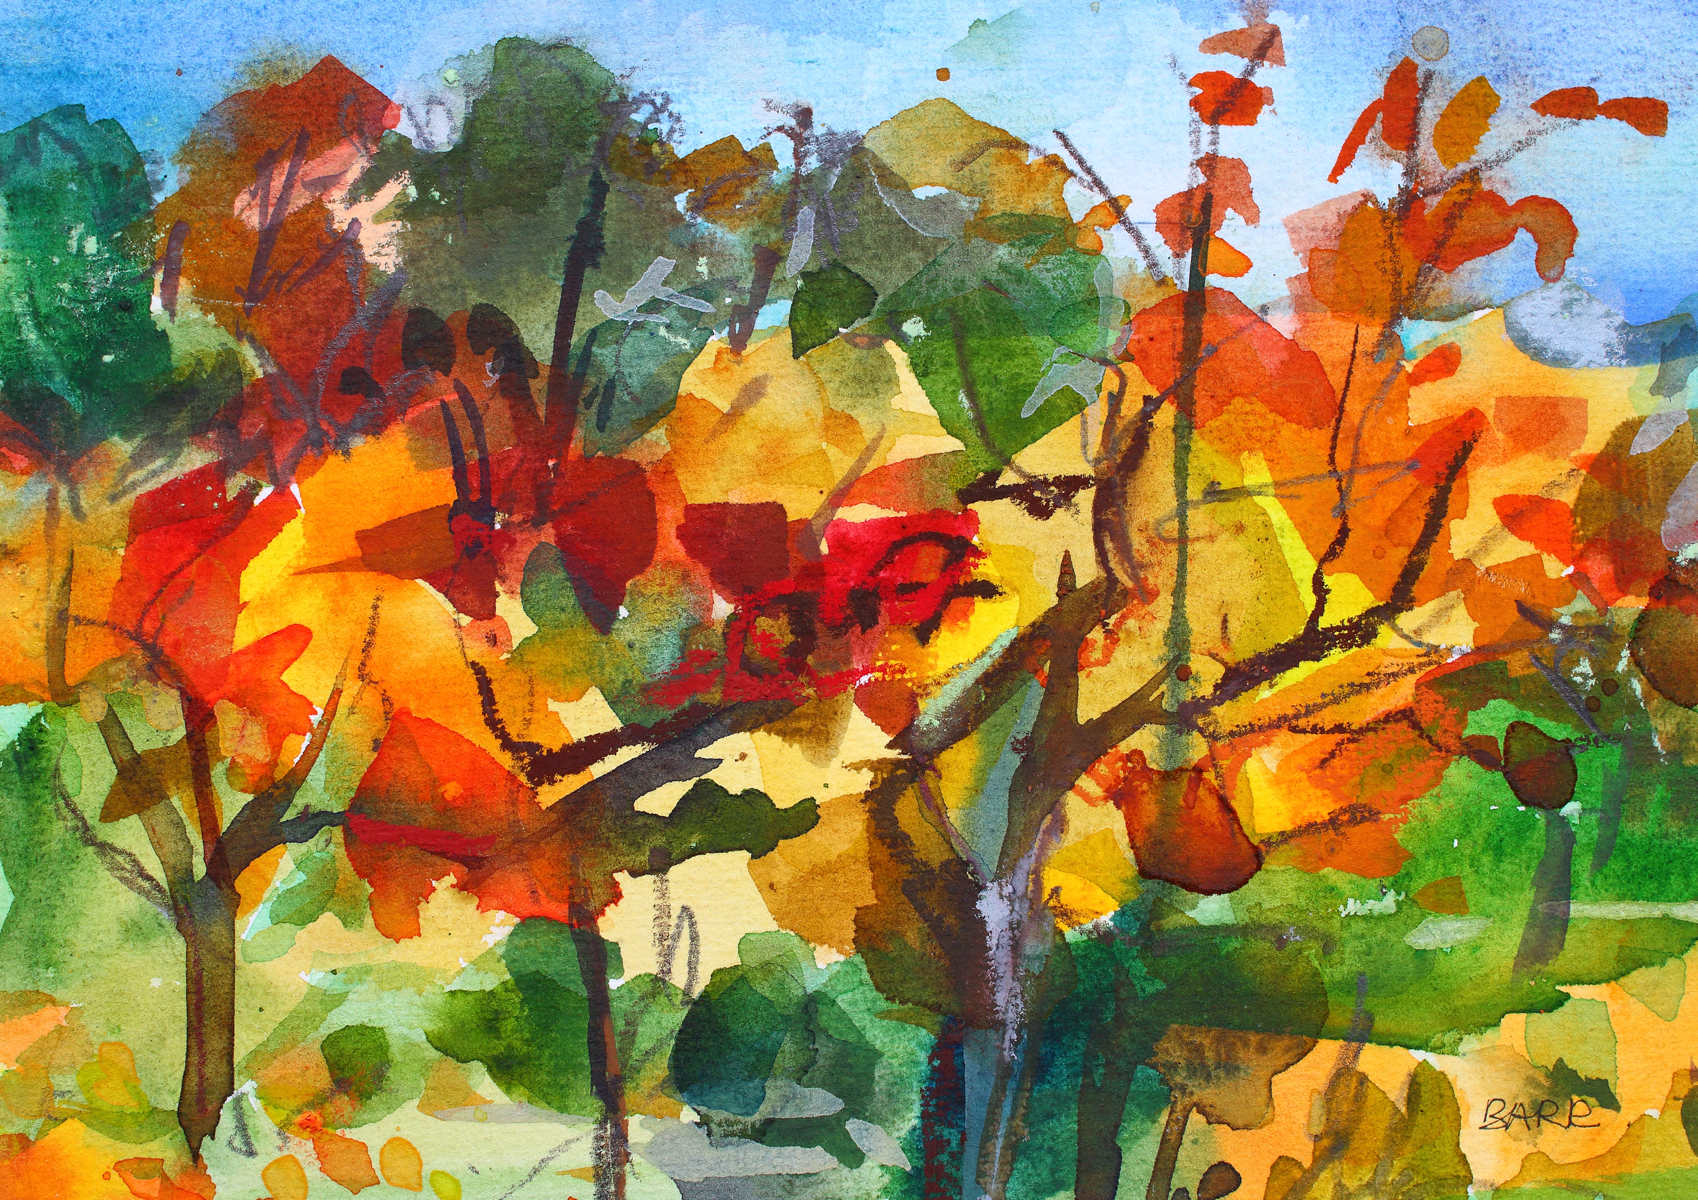 Watercolour titled Autumn Trees by Shona Barr